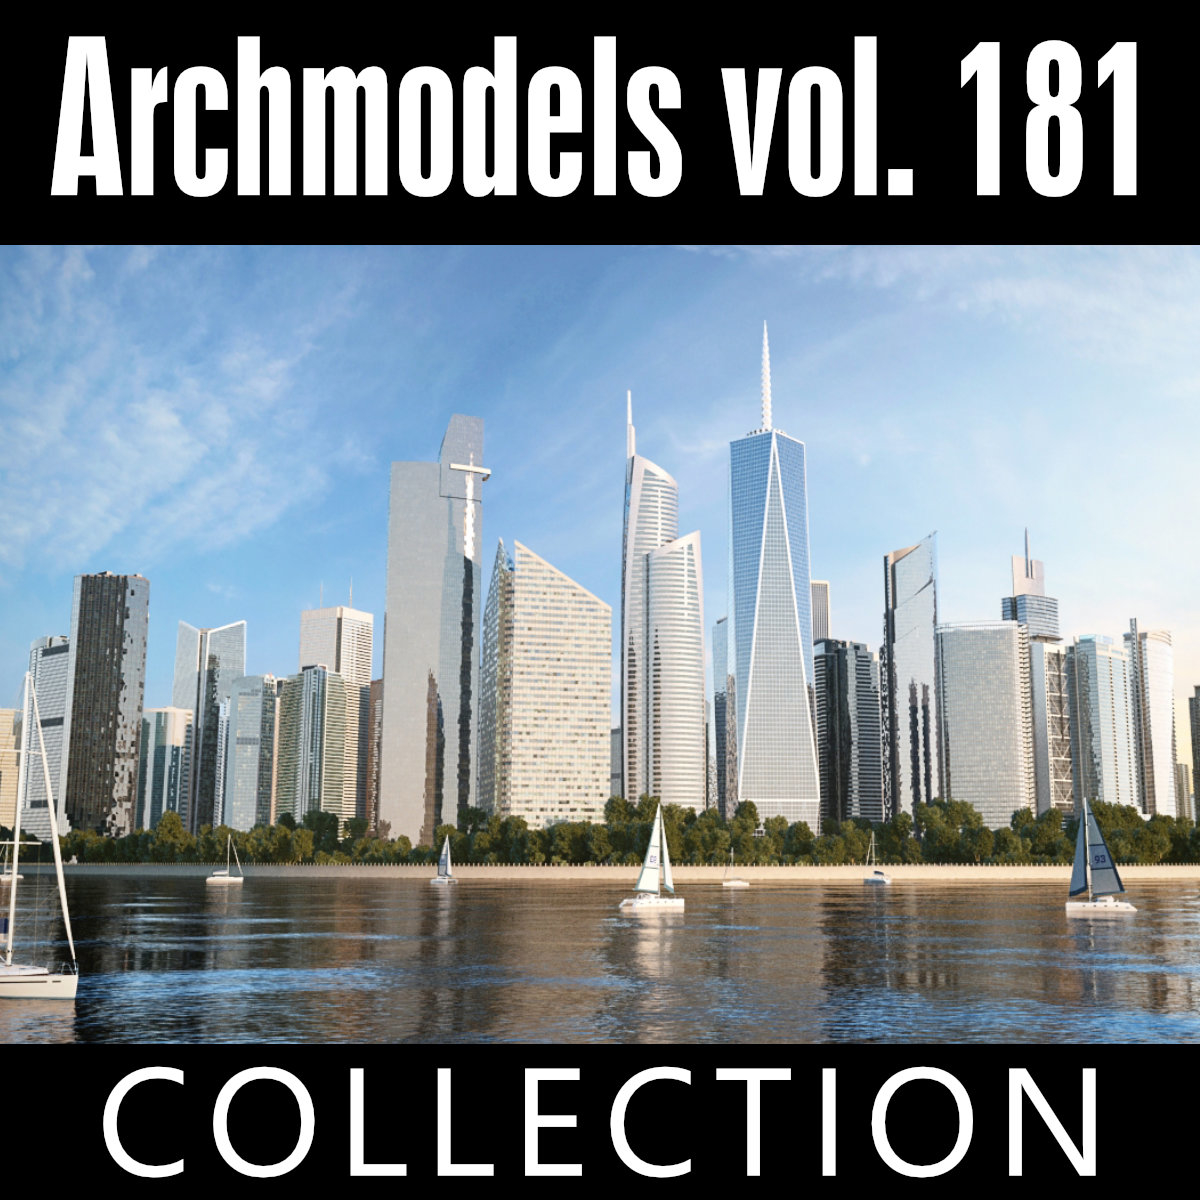 archmodels vol 181 skyscrapers 3D model